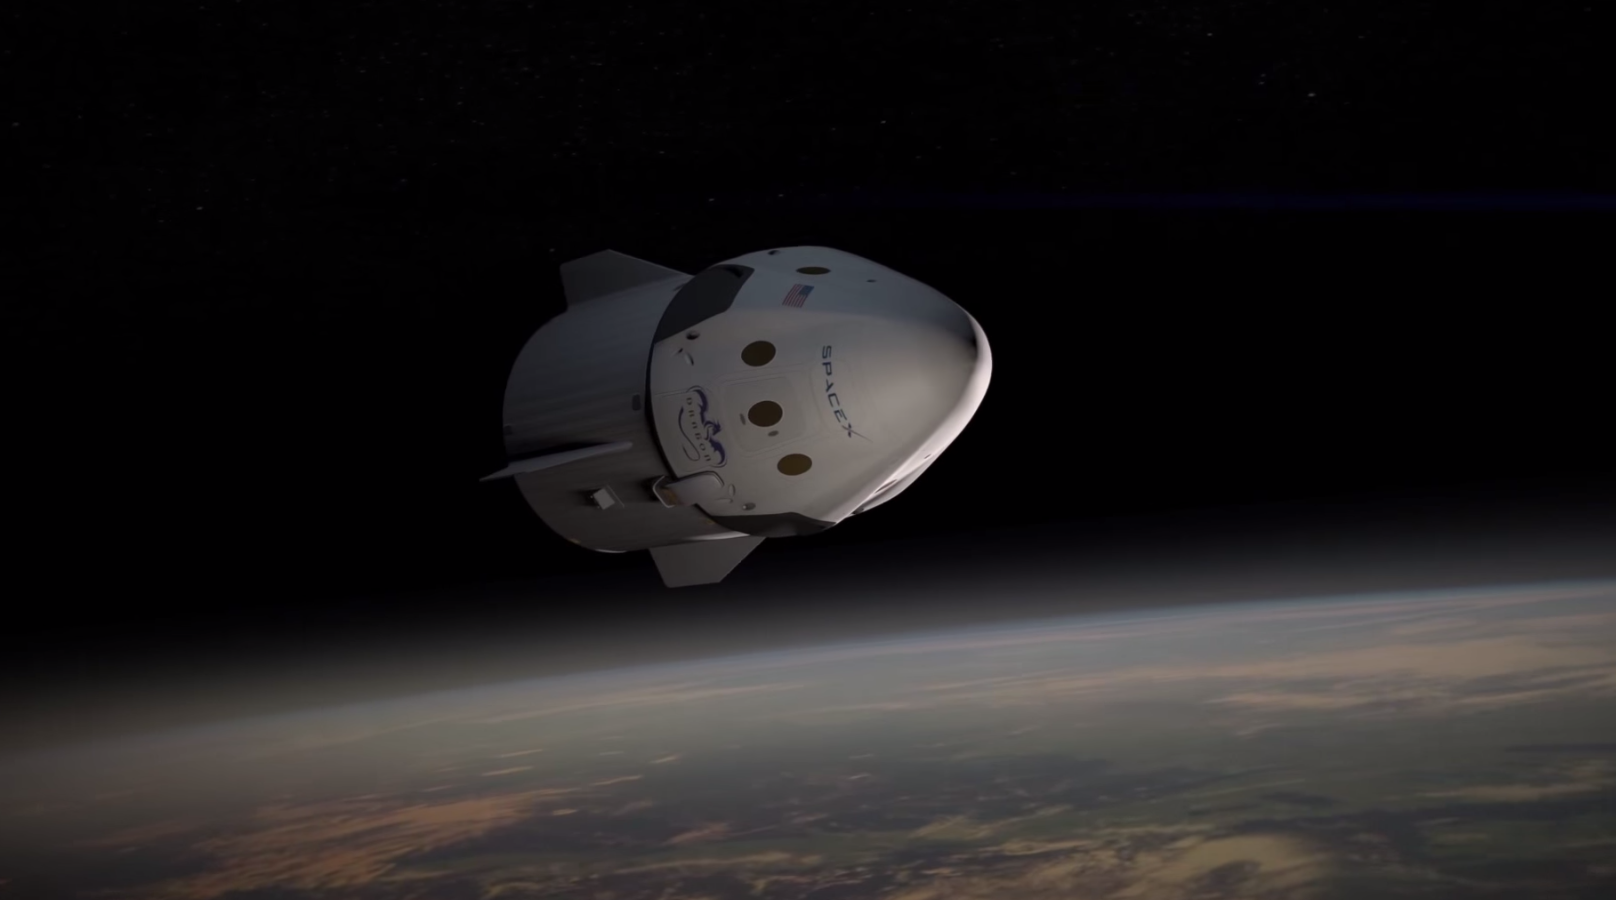 dragon spacecraft video - 945×680